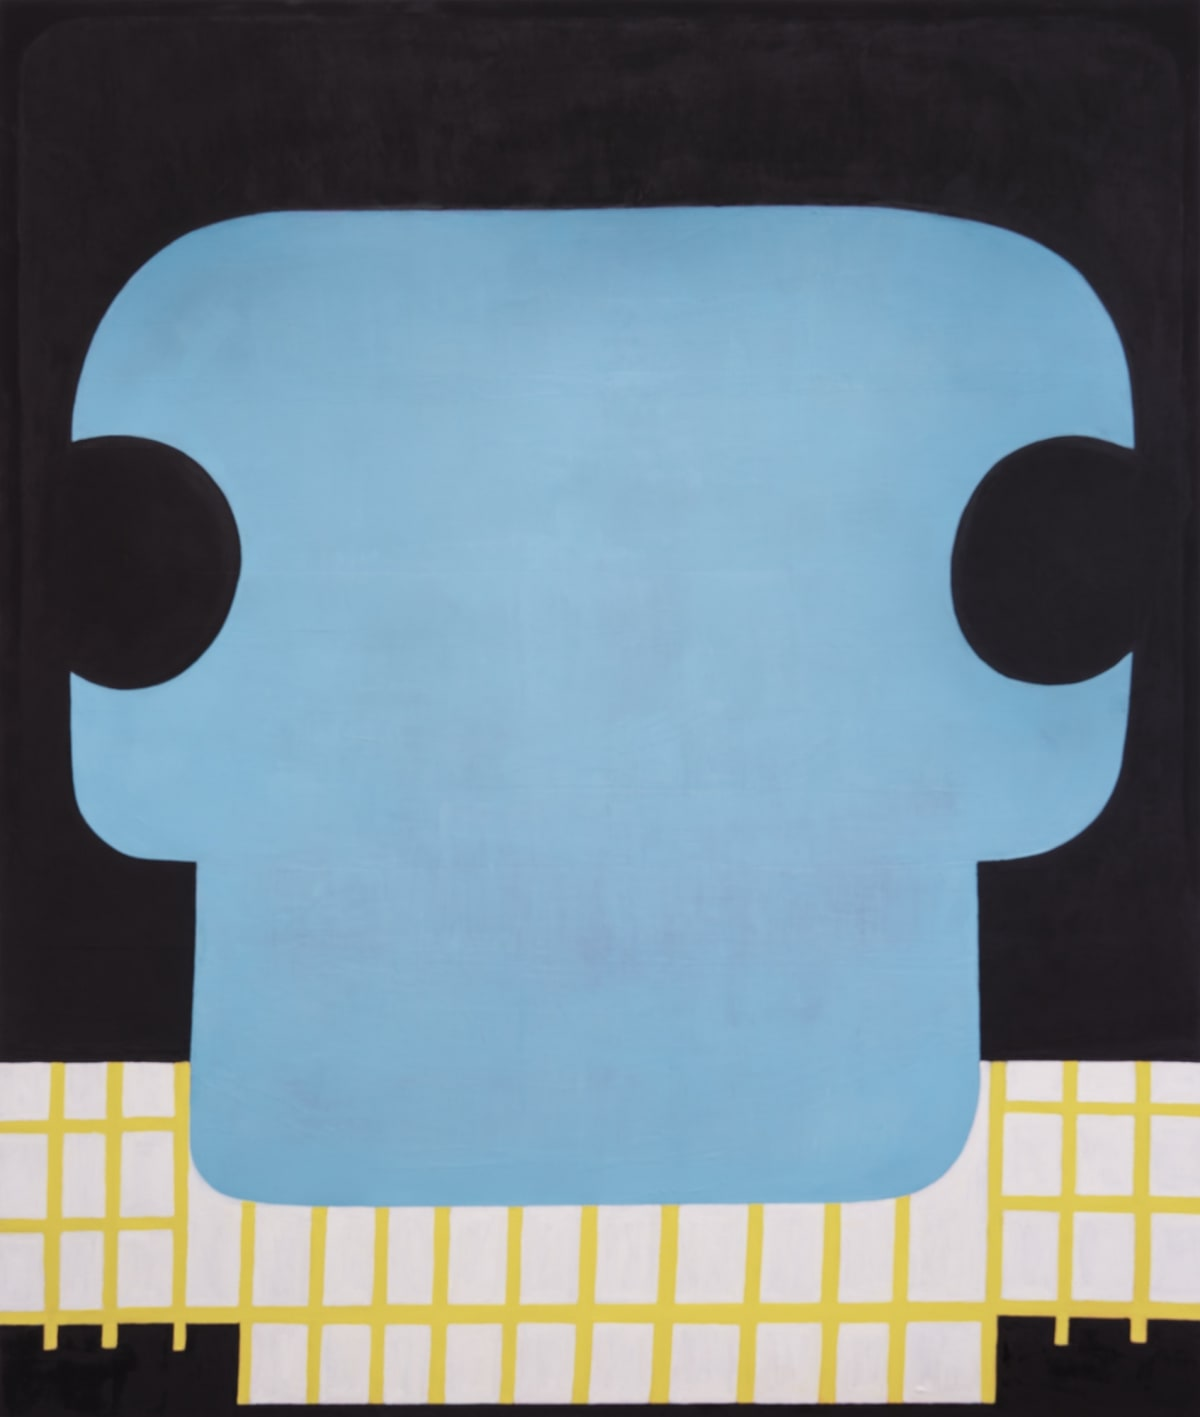 "Fran Shalom's ""Dropping the Story"" oil painting on canvas in flat shades of blue, yellow, black and white. The blue design in the foreground is overlapping the background that resembles a room with yellow gating."